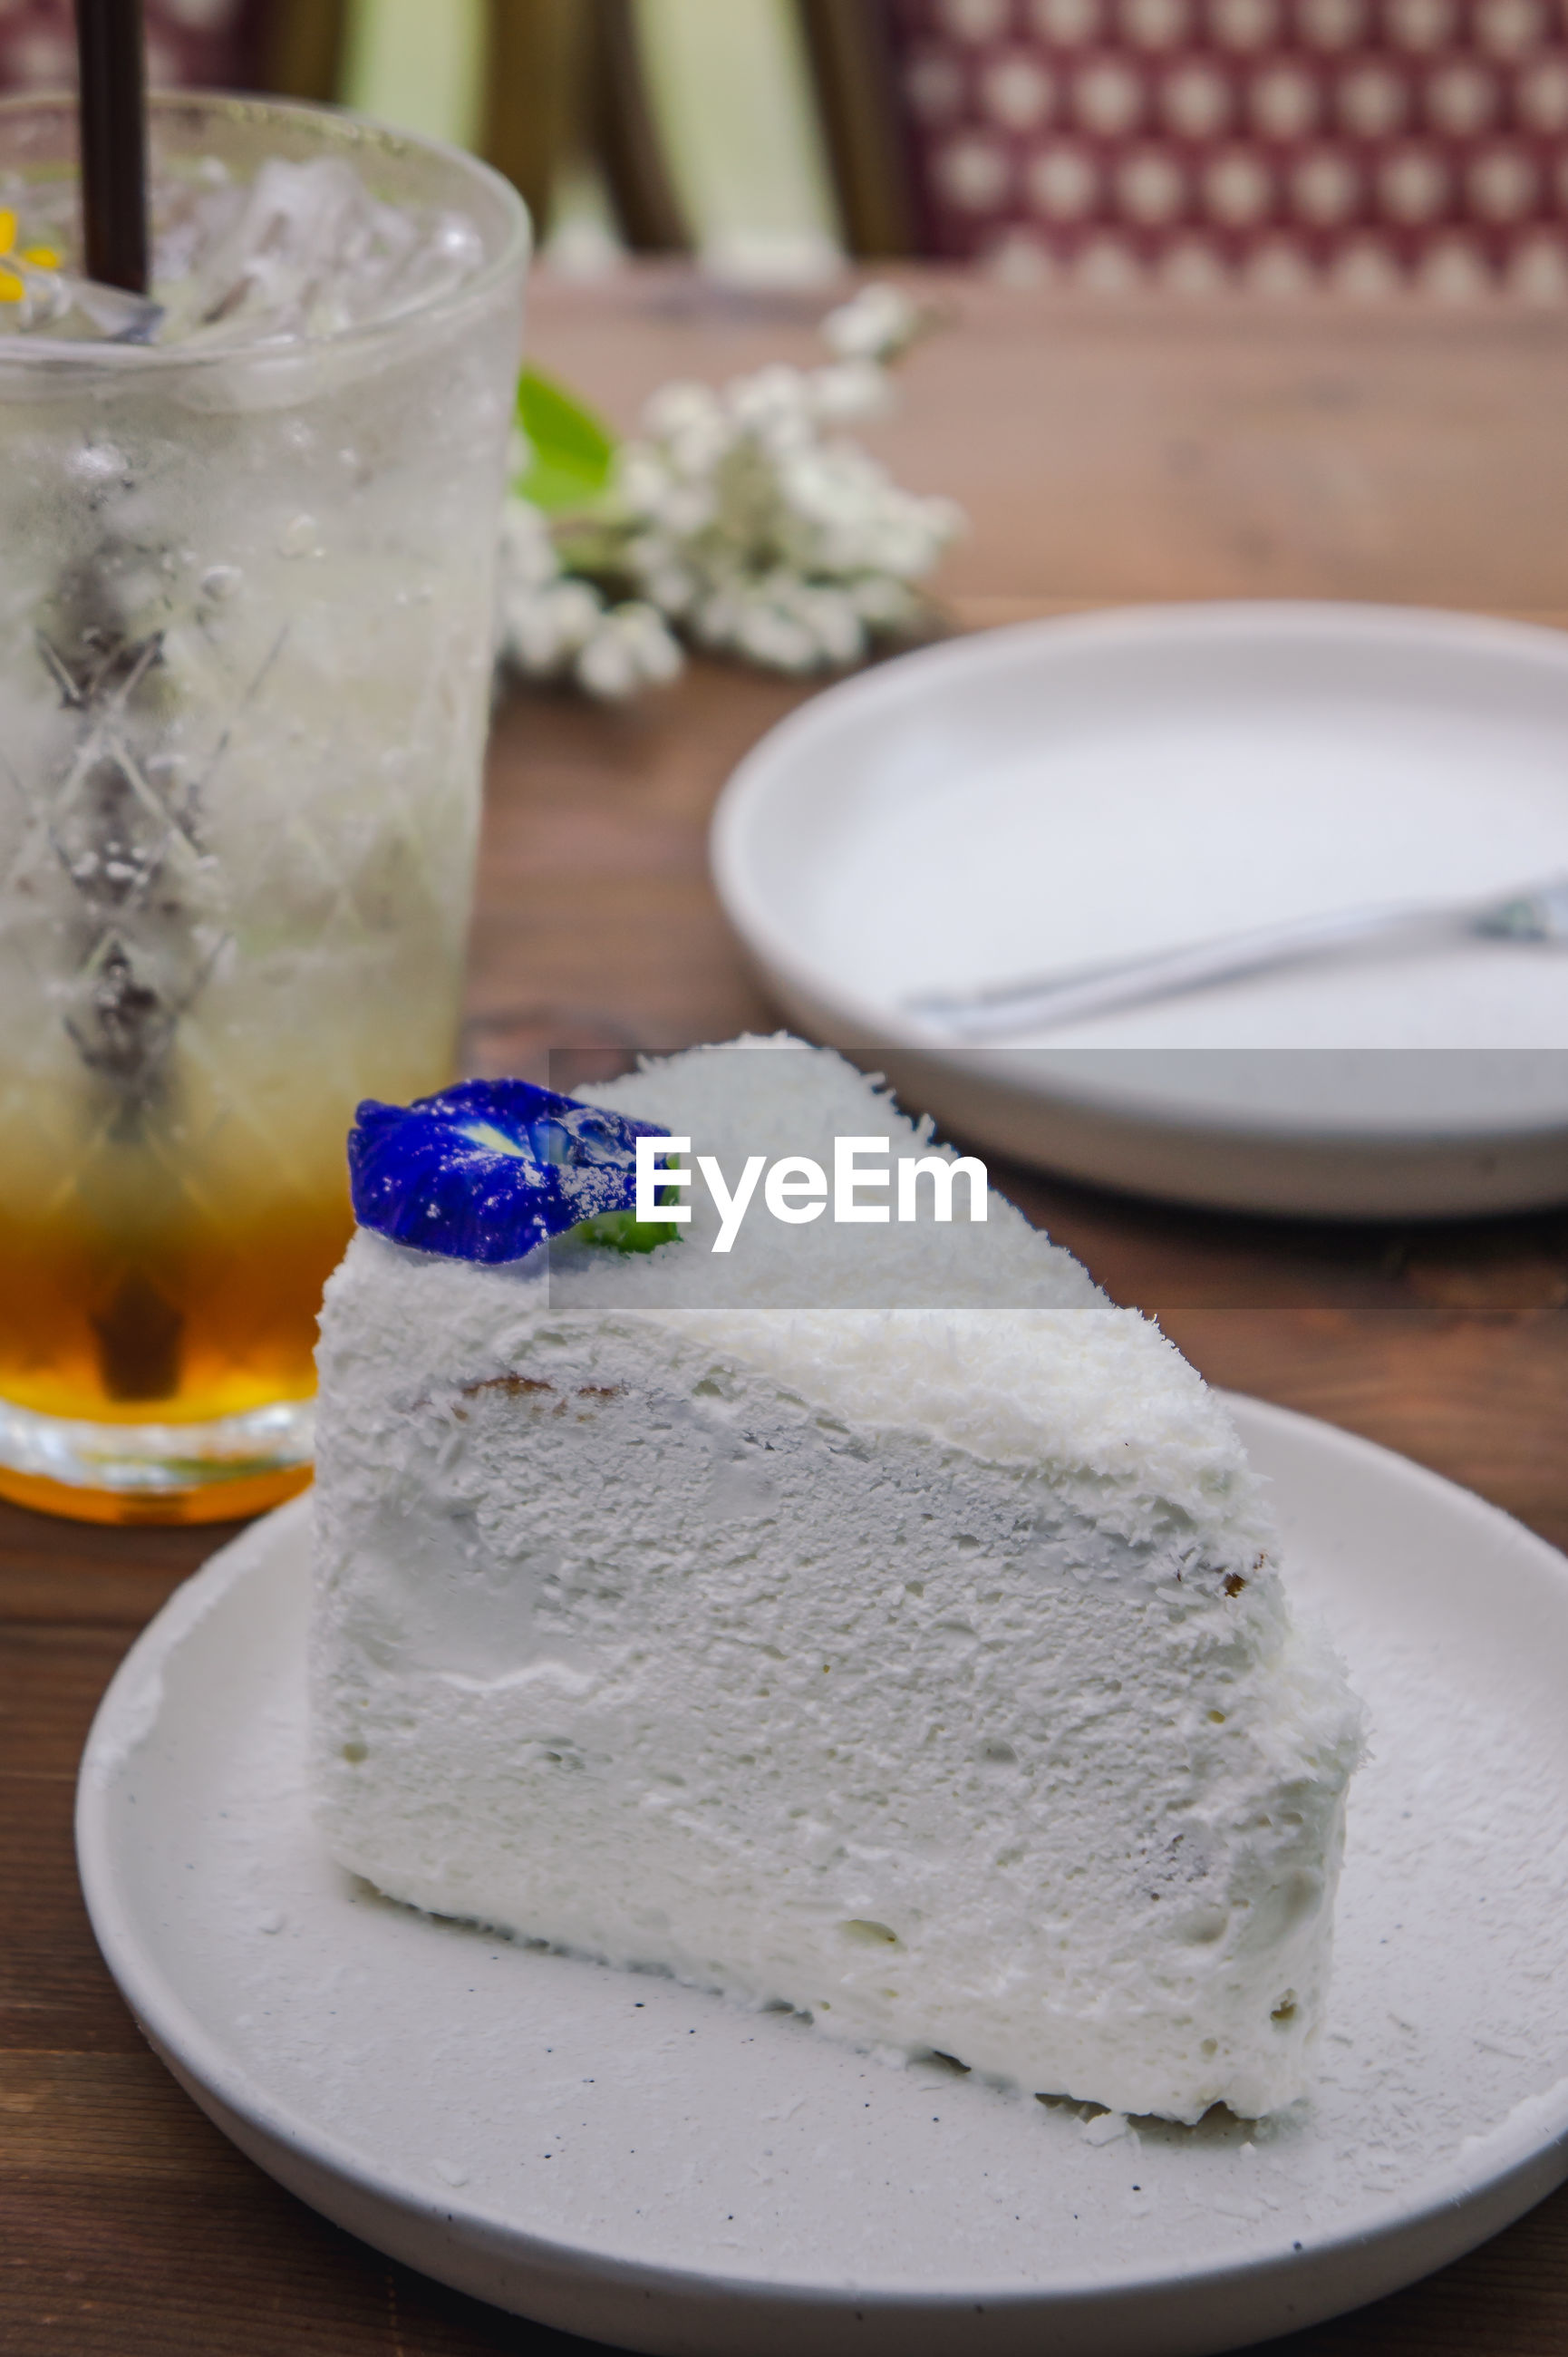 Close-up of cake slice in plate on table